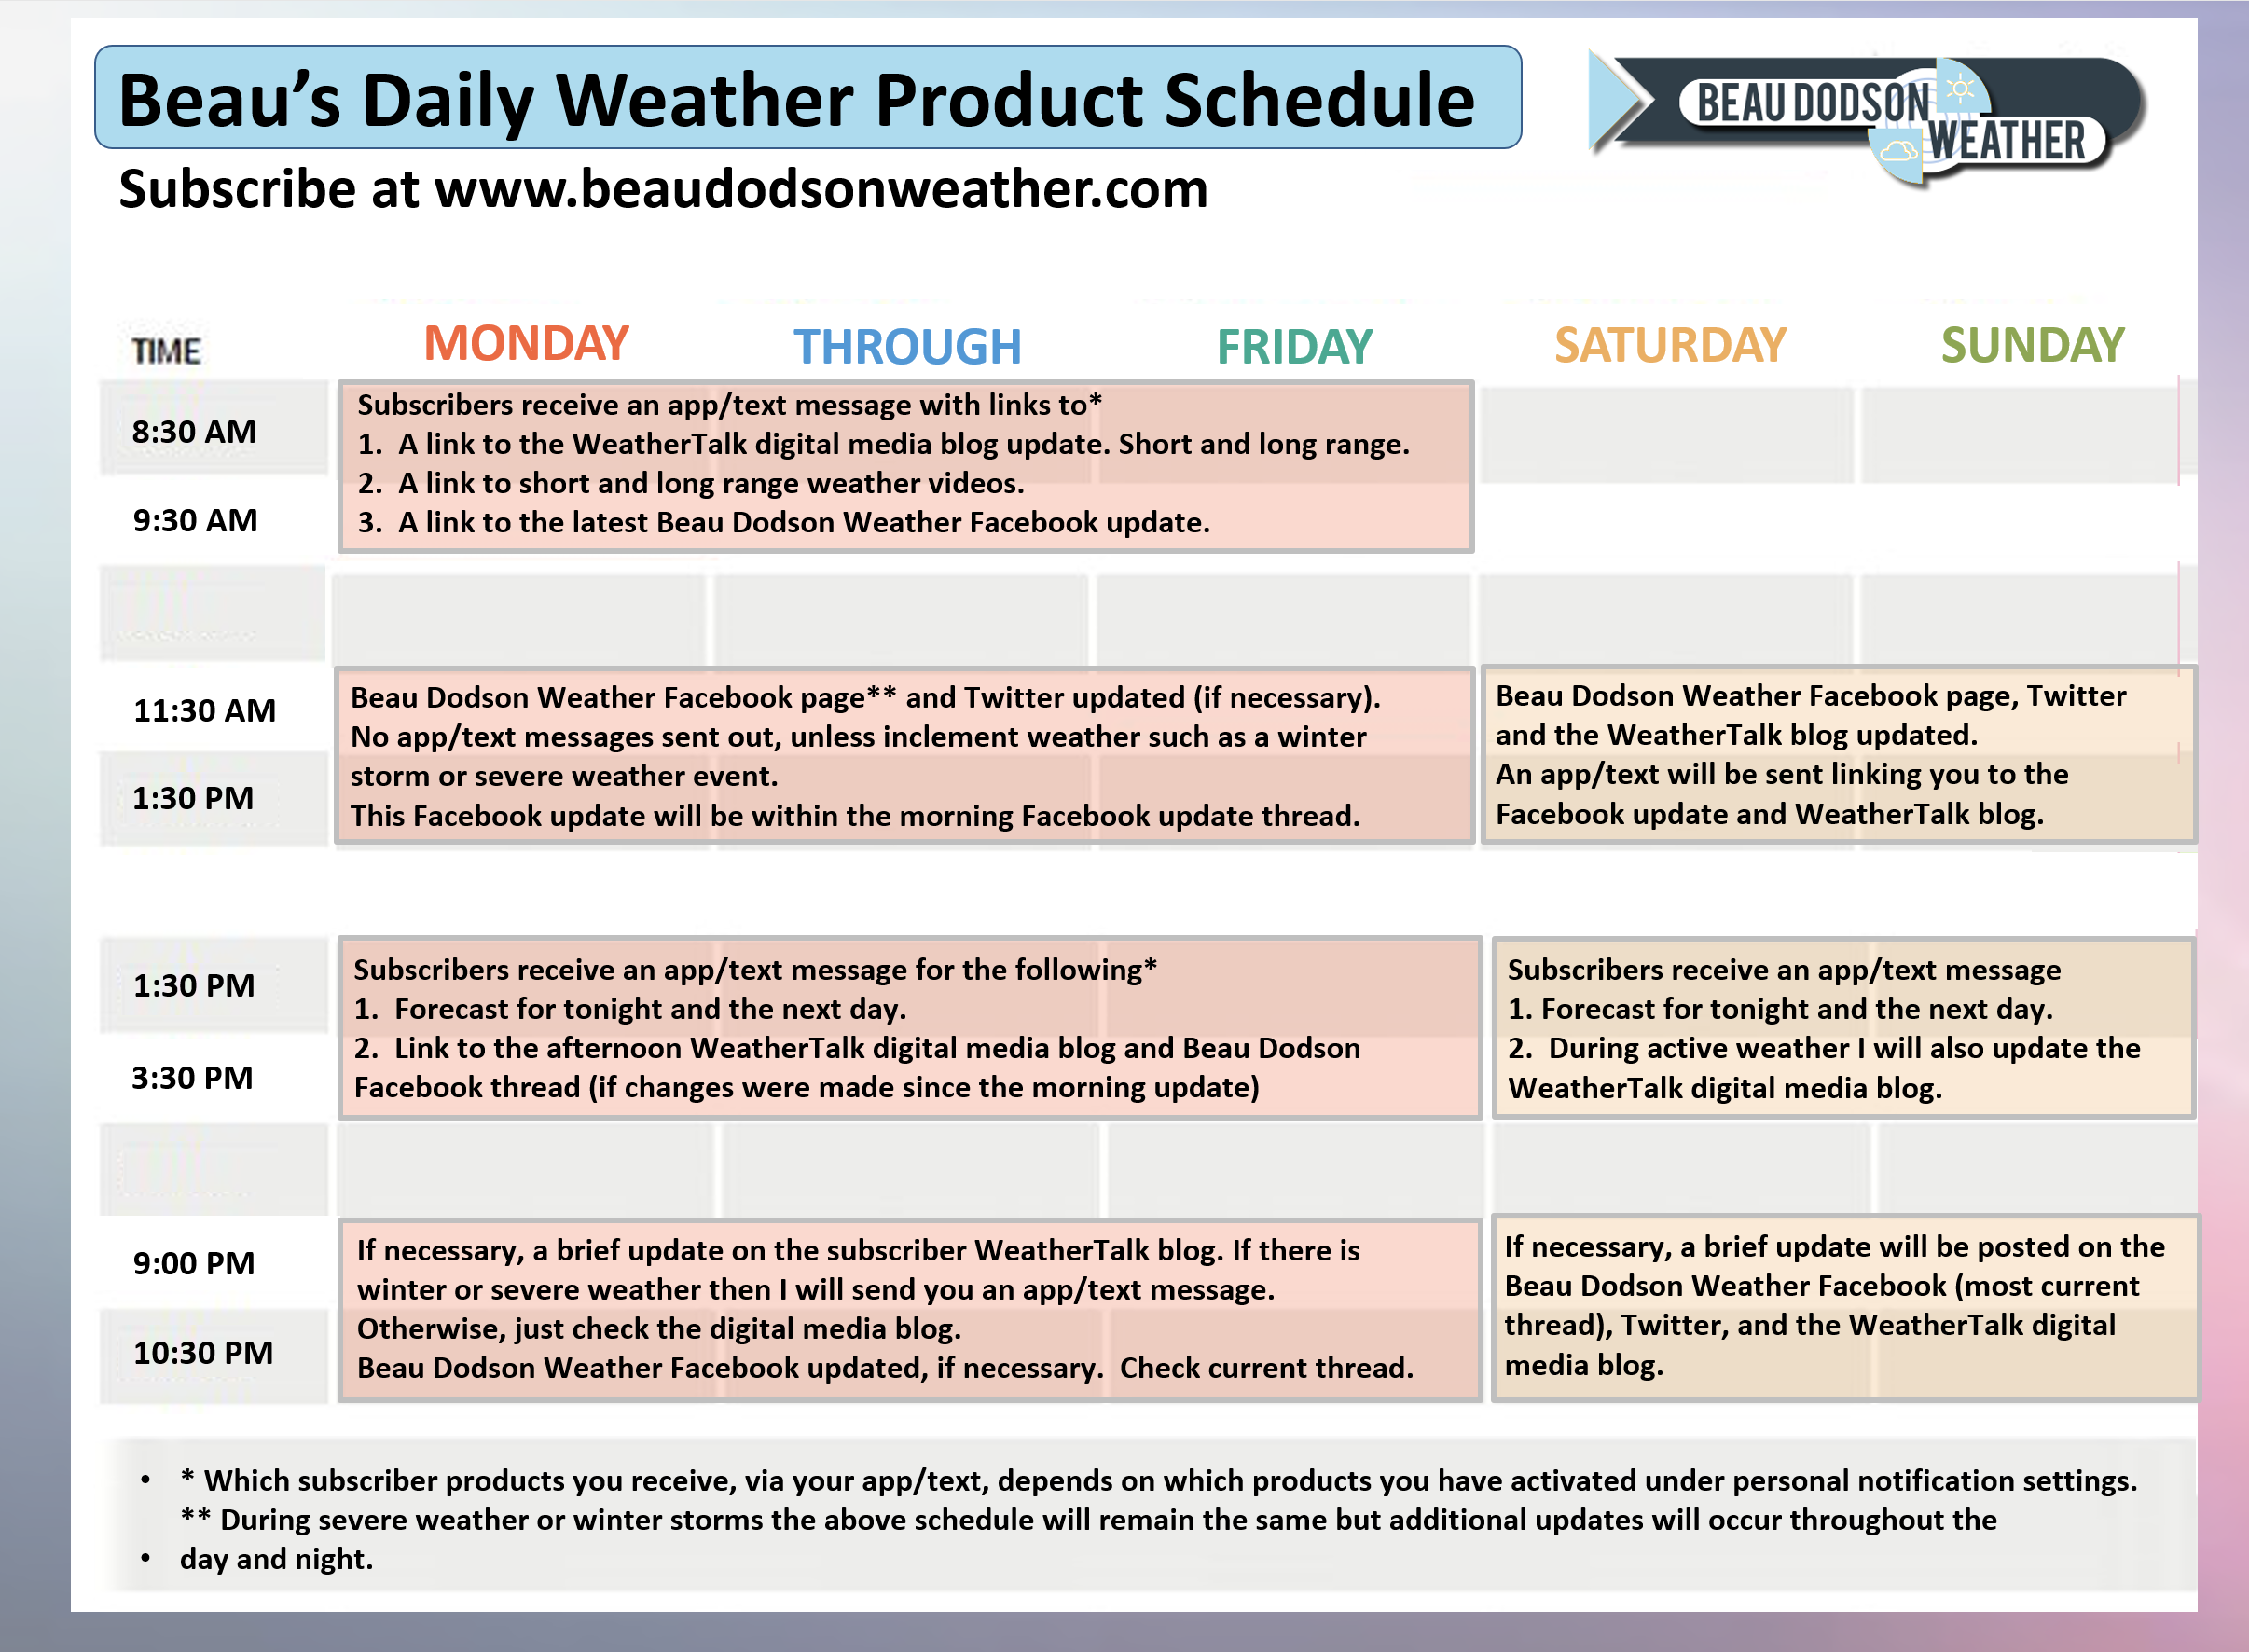 August 31, 2018: (31st) A warm weekend ahead  Subscribers